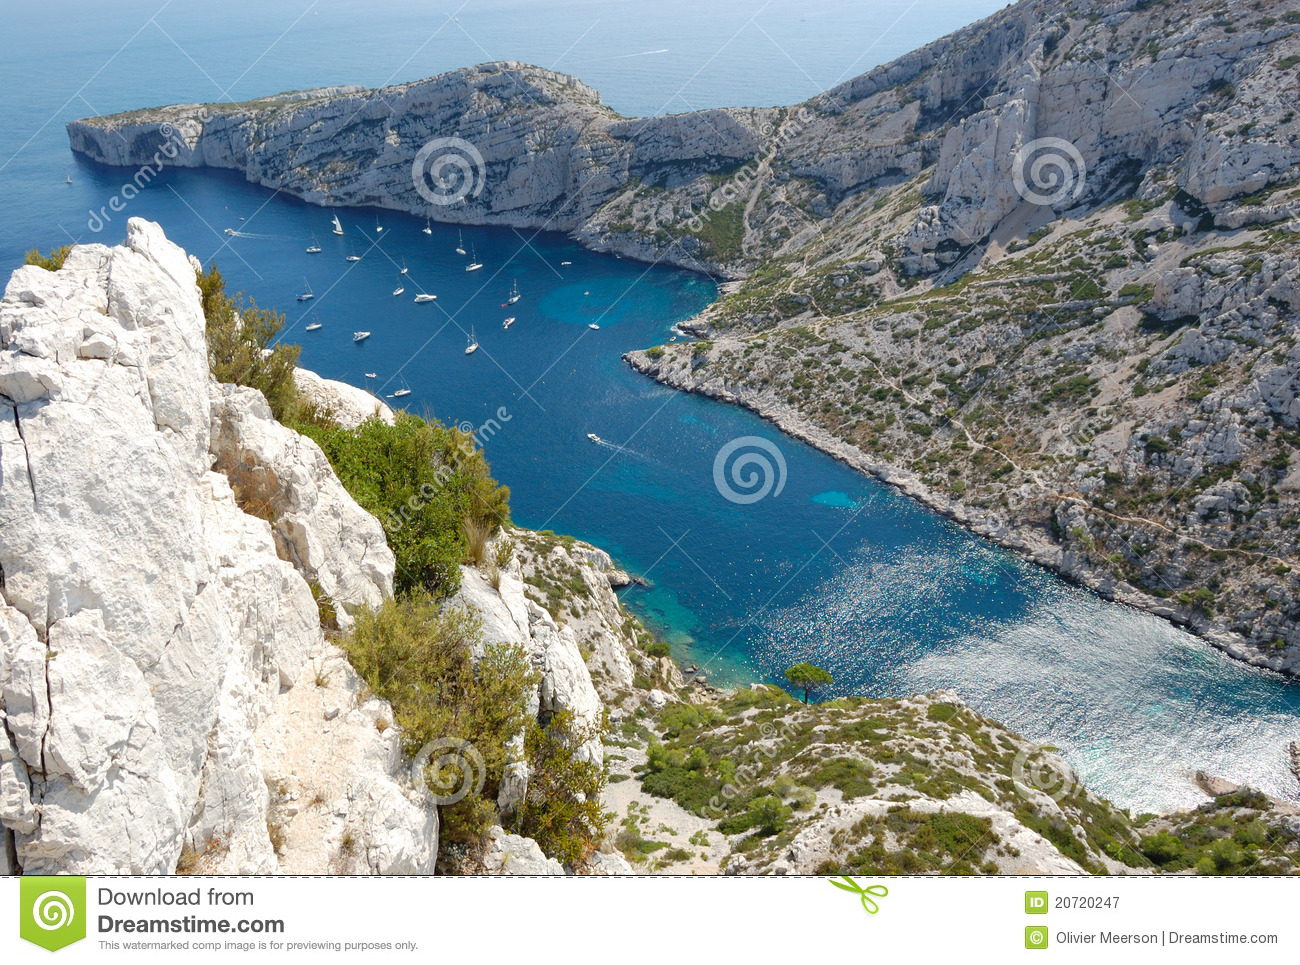 calanques de luminy marseille image stock image du bleu roches 20720247. Black Bedroom Furniture Sets. Home Design Ideas